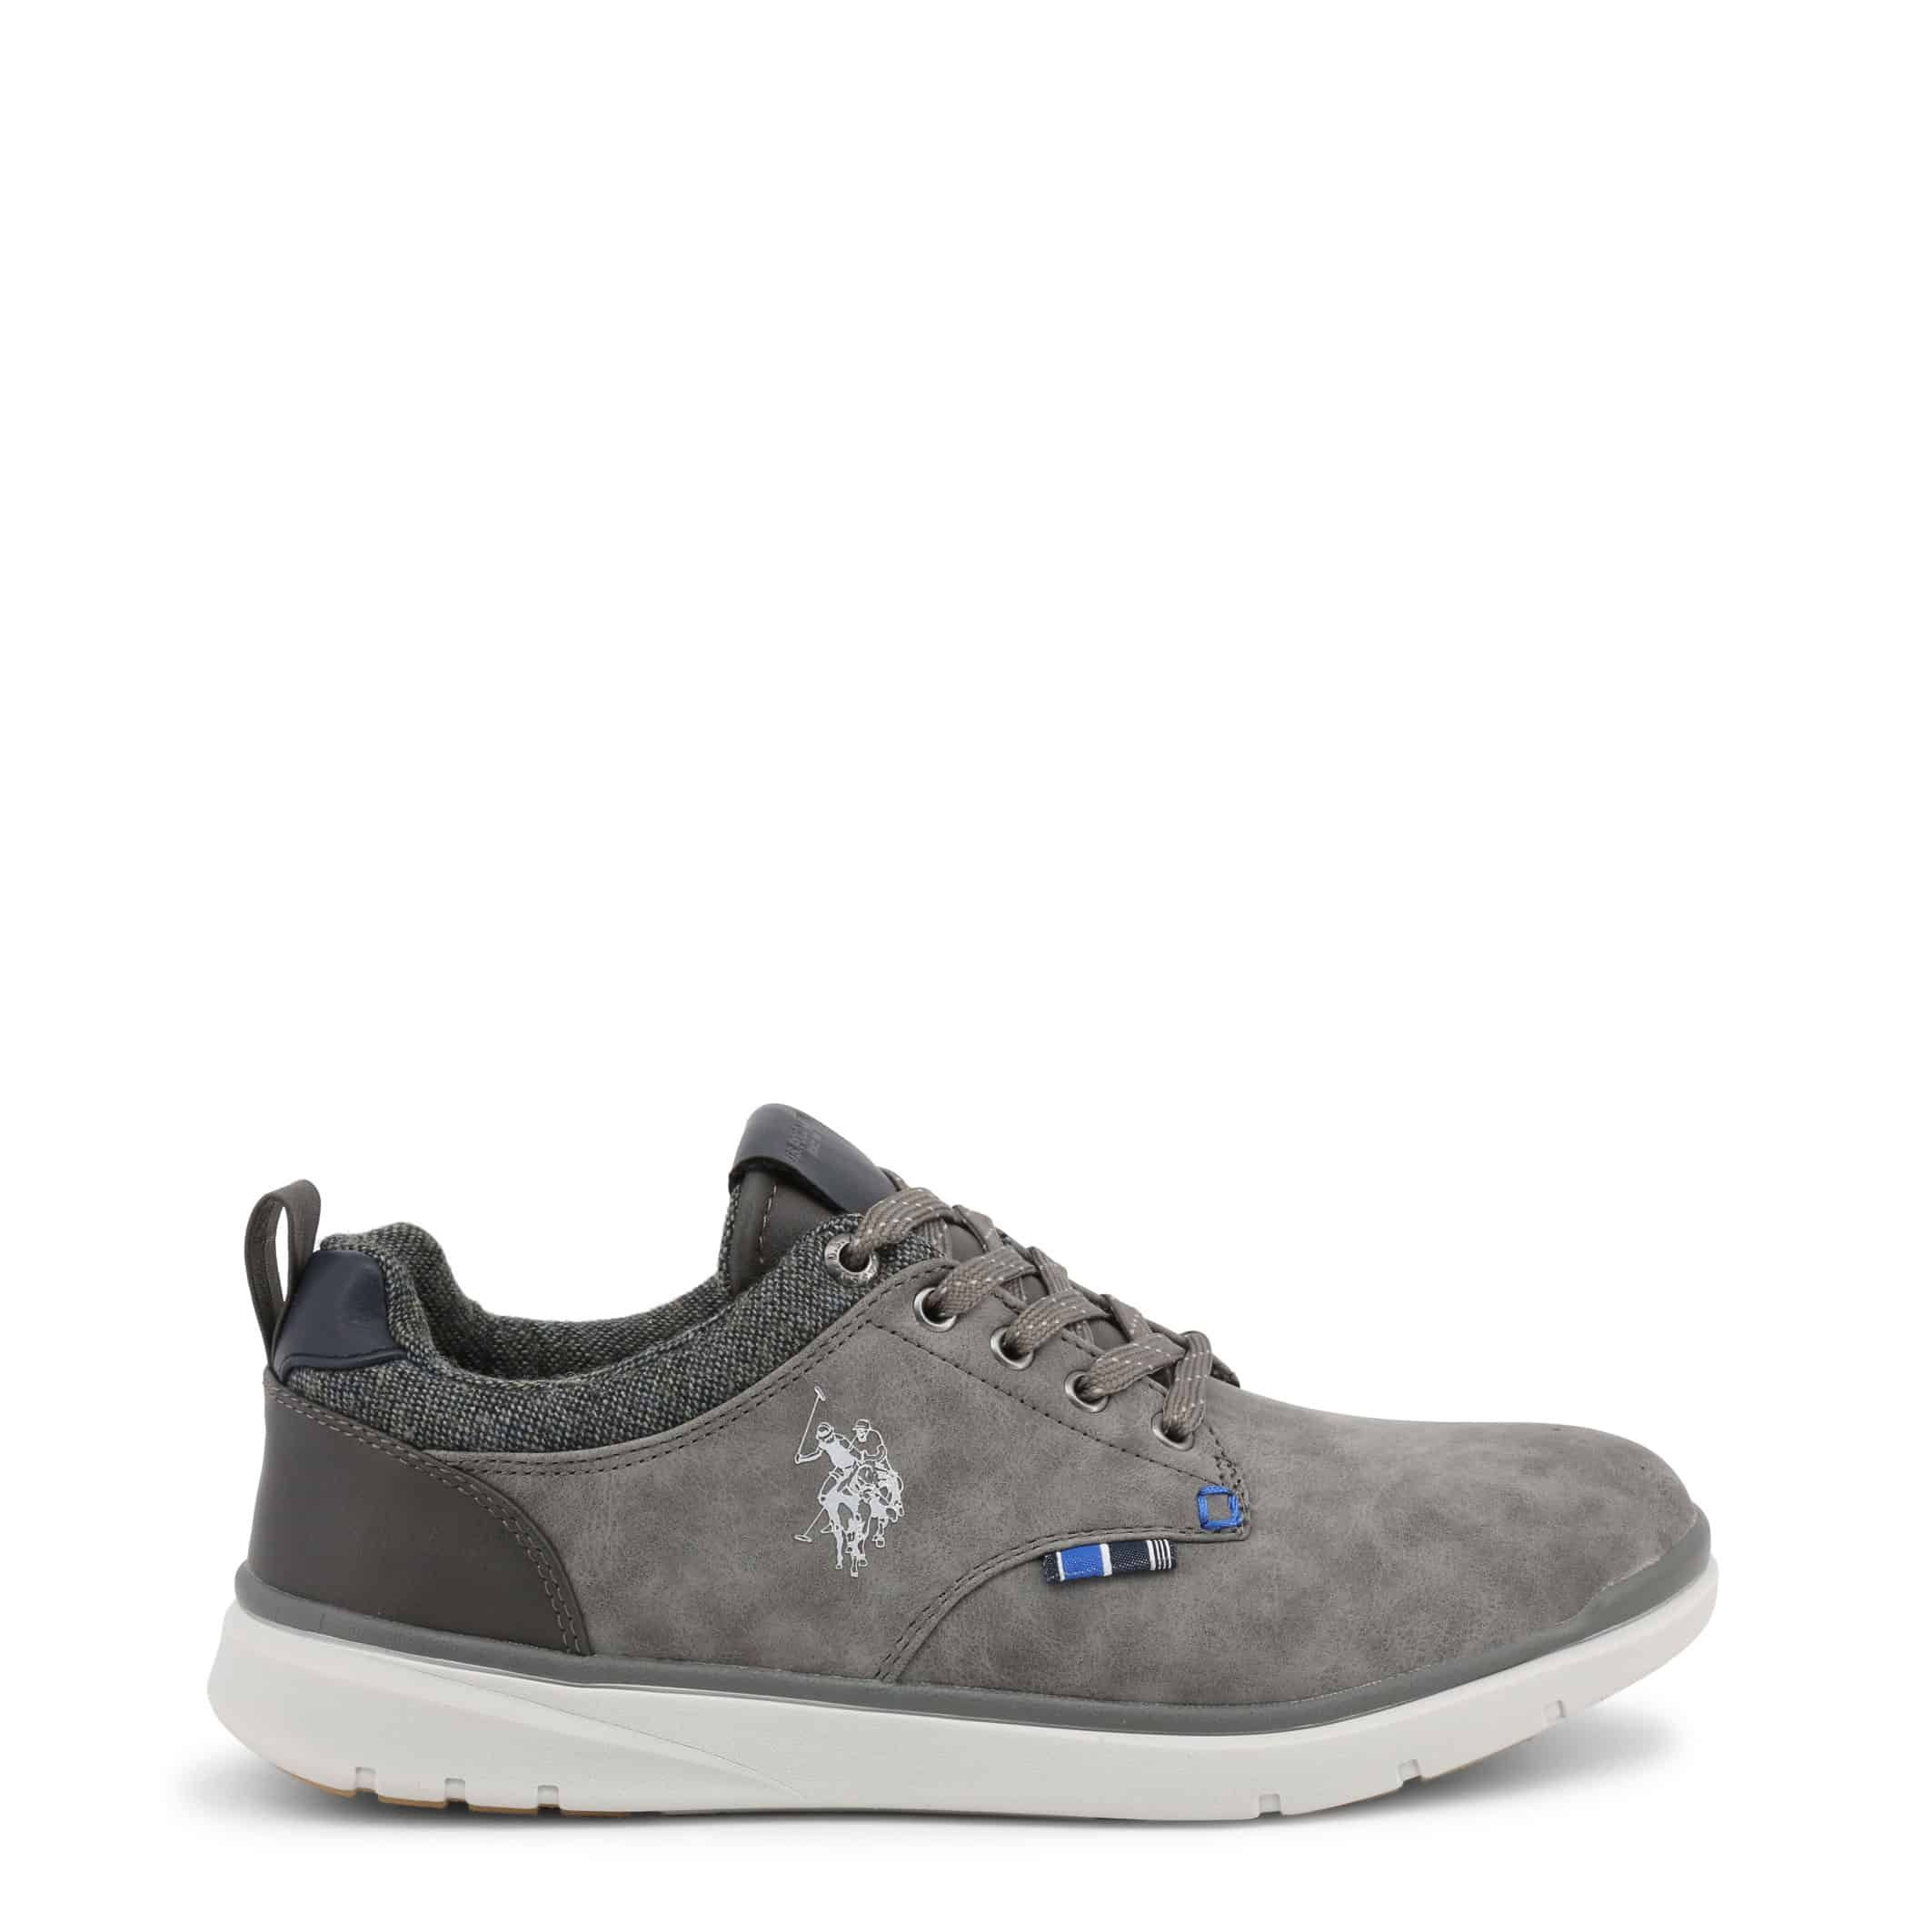 Chaussures à lacets U.S. Polo Assn. – YGOR4081W8